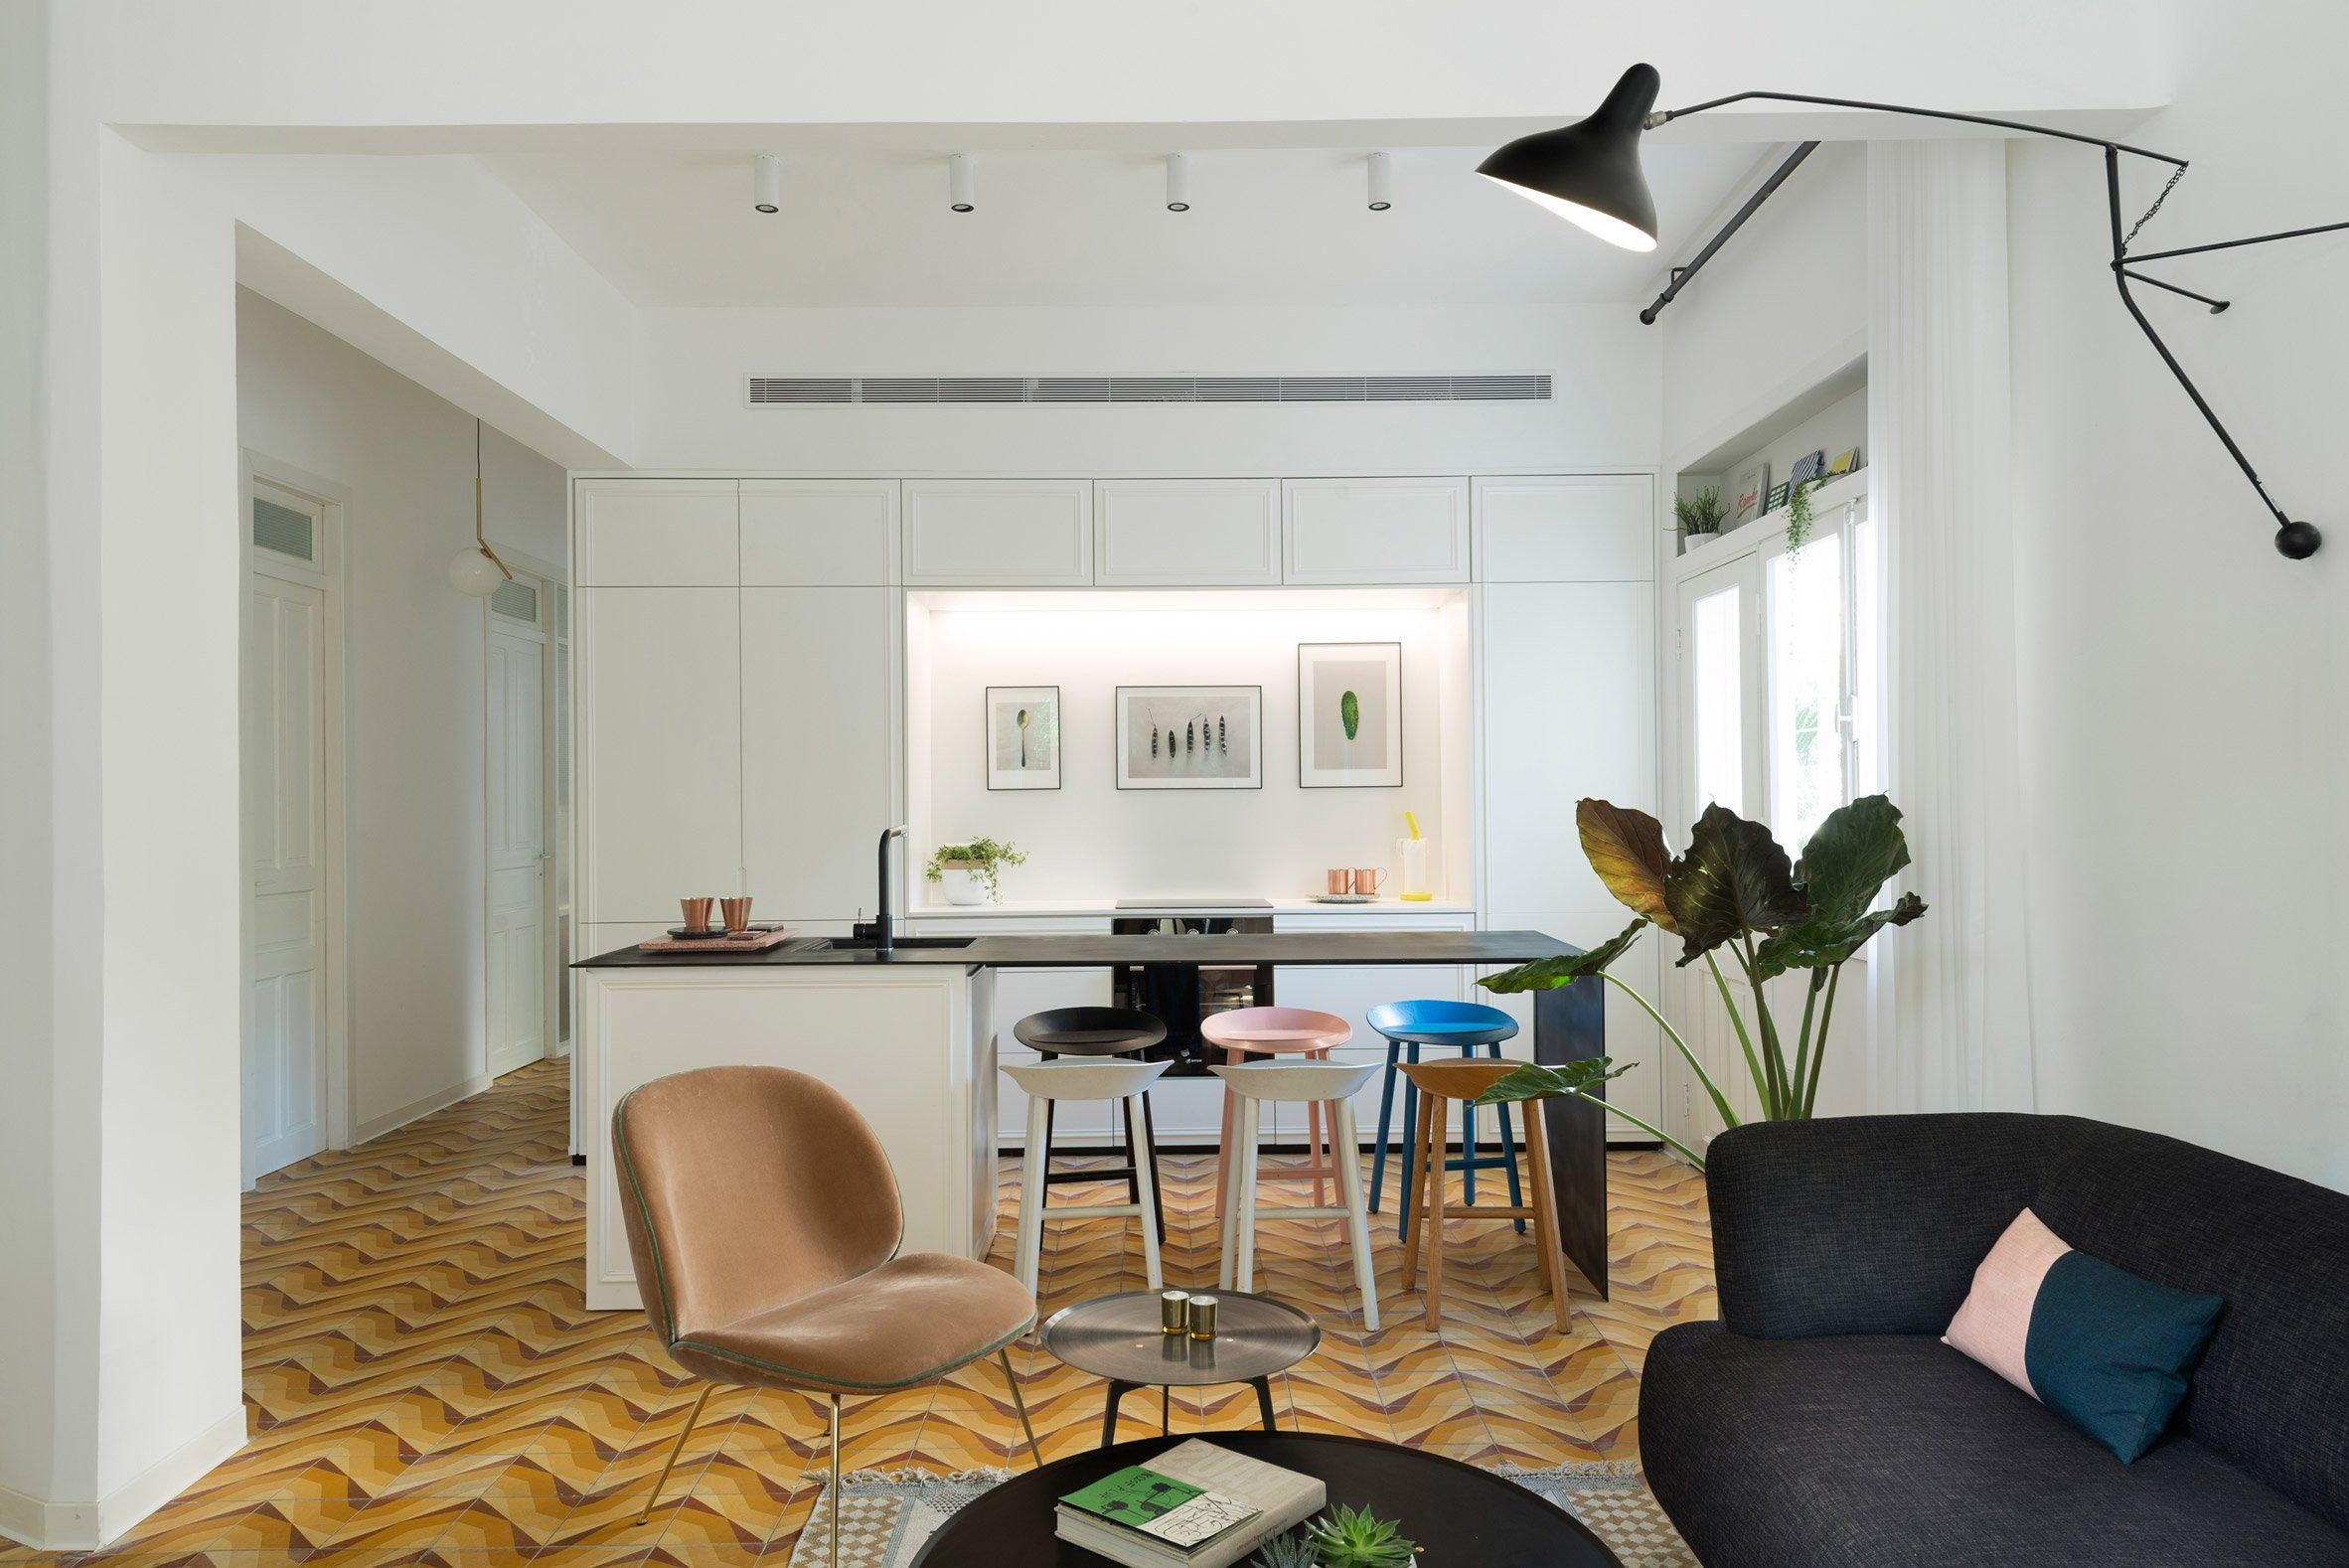 Maayan Zusman and Amir Navon have renovated an apartment with a ...